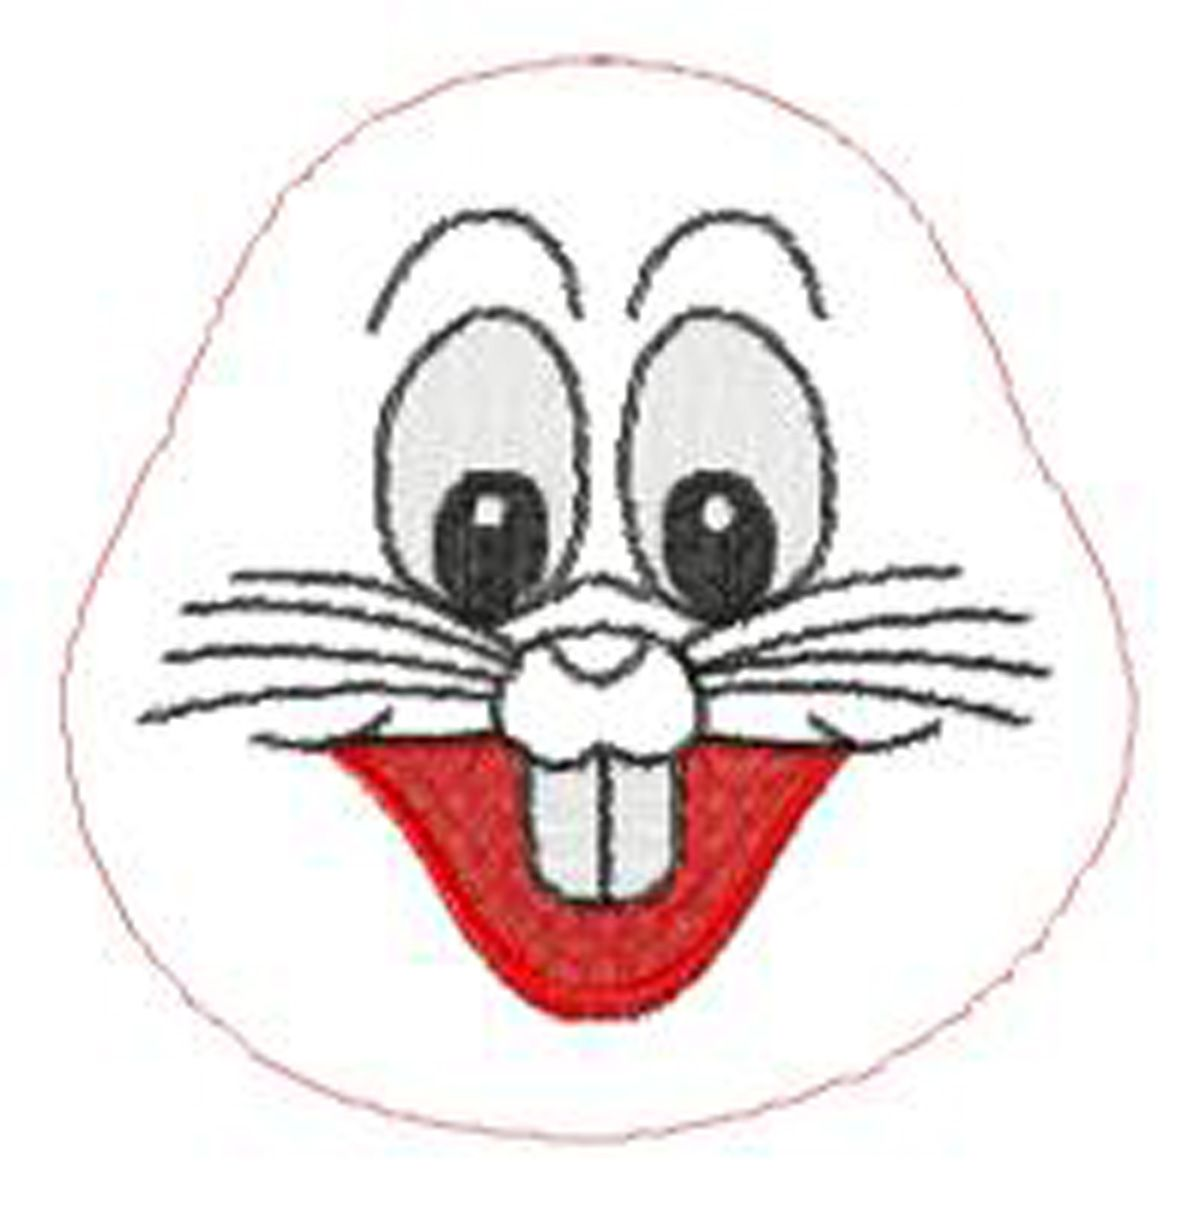 Bunny Face Template Bobby Bunny Project A Happy Bunny Face For 5